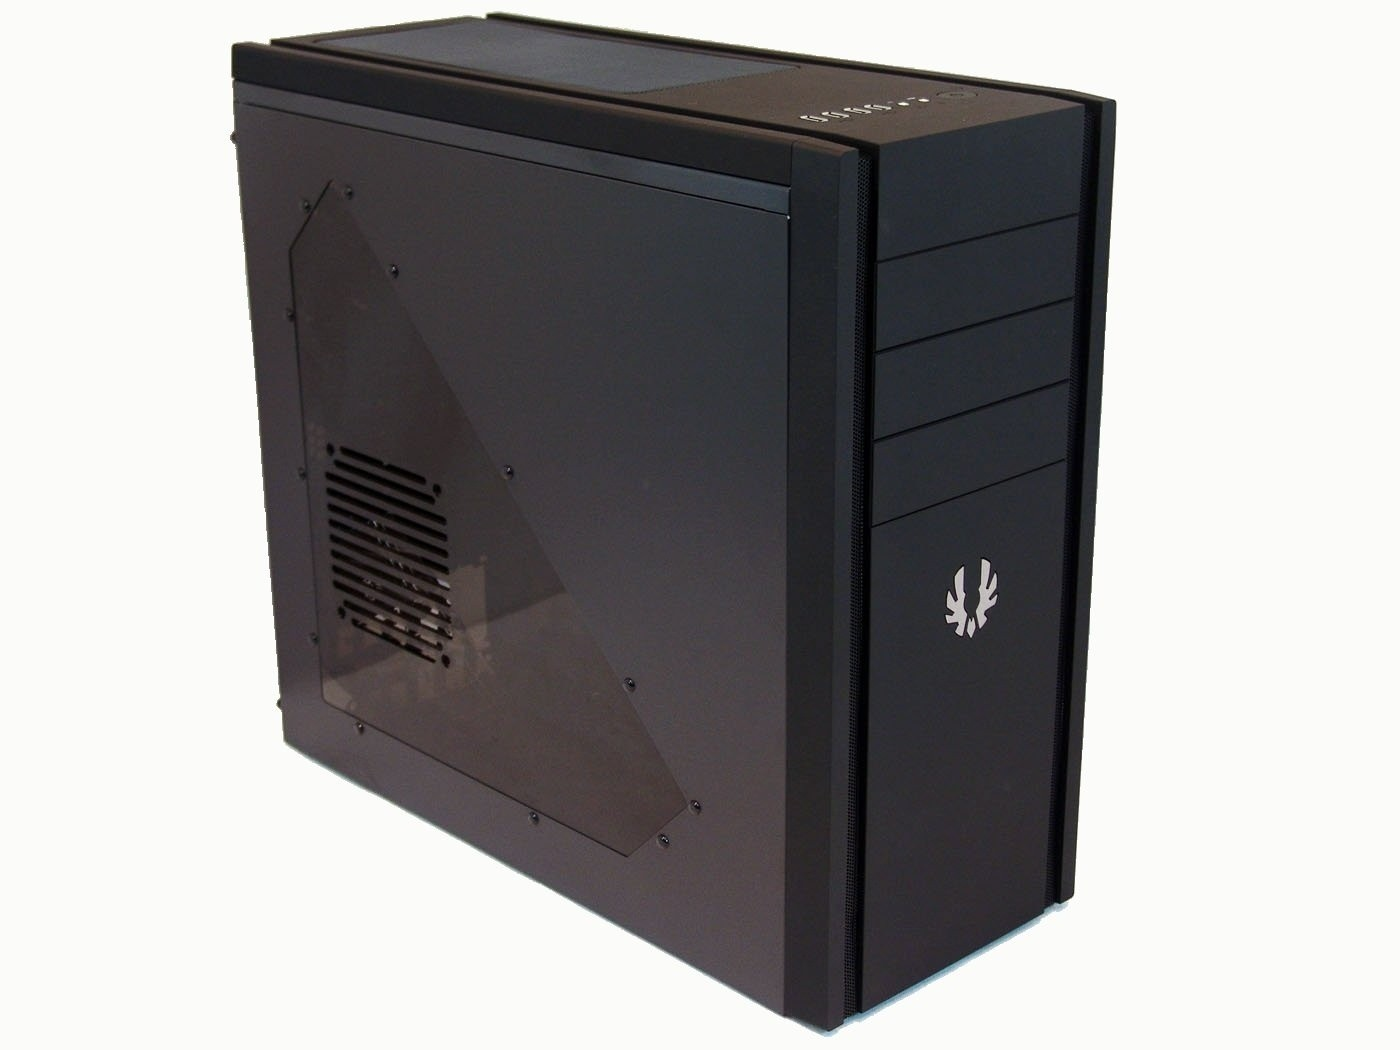 bitfenix_shinobi_window_mid_tower_chassis_review